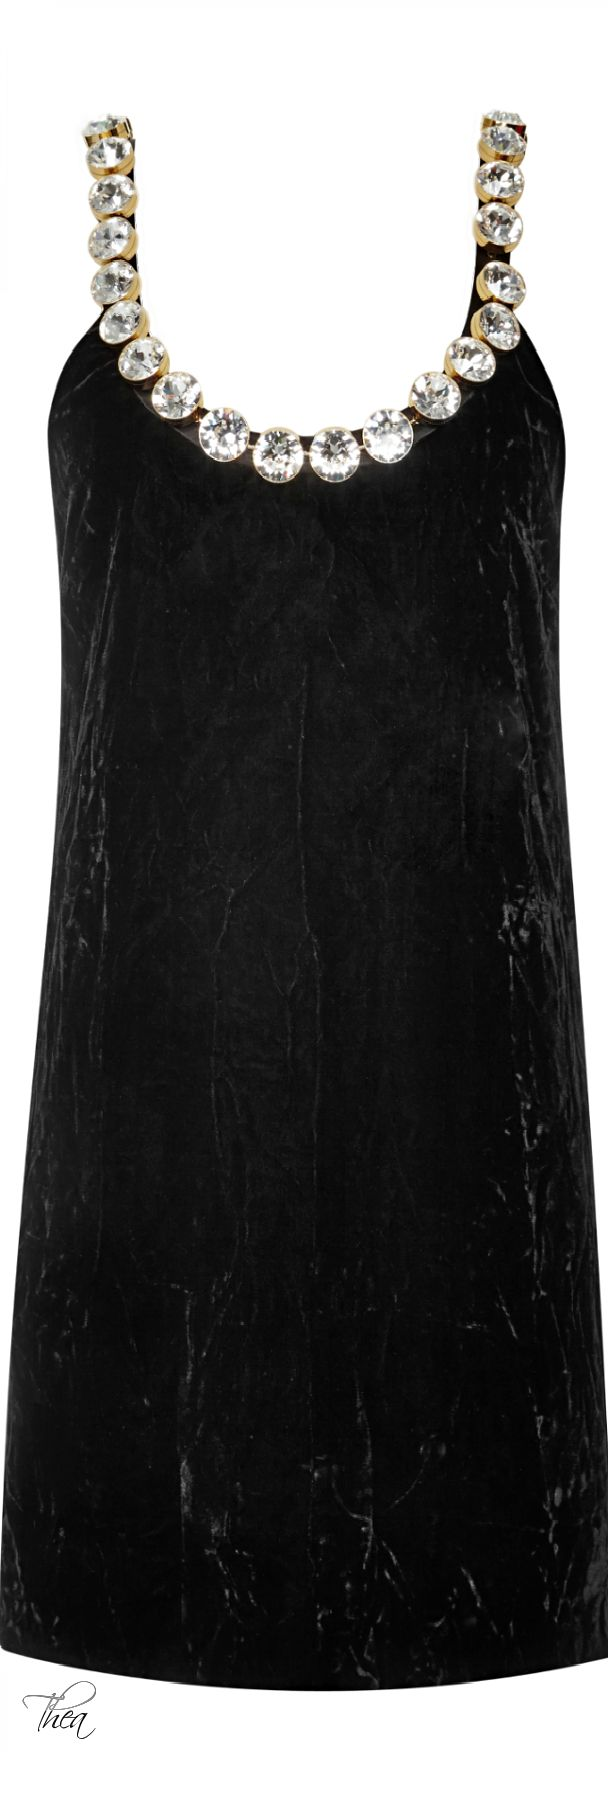 Marc Jacobs ● Resort 2015, Crushed Velvet Dress With Swarovski Crystals. Absolutely gorgeous.